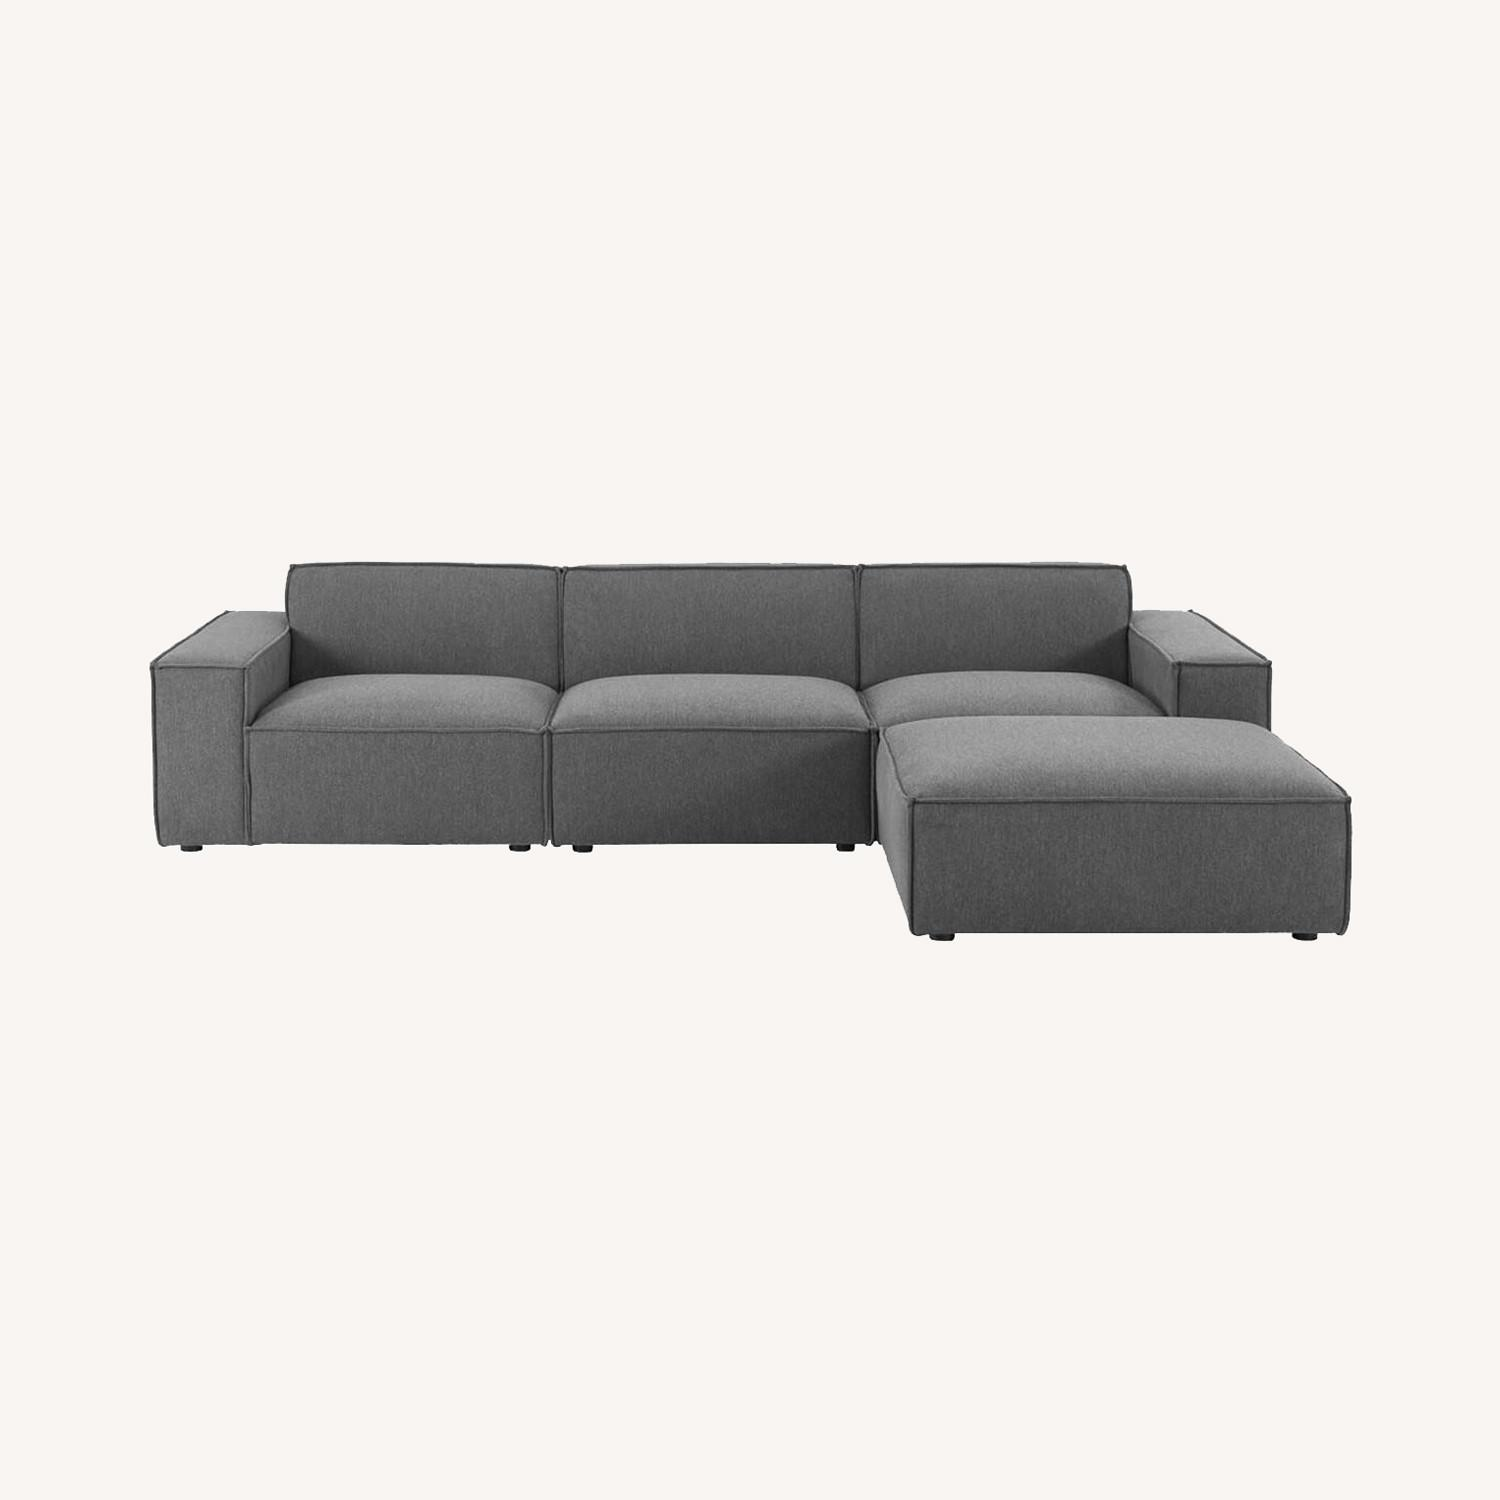 4-Piece Sectional Sofa In Charcoal Fabric Finish - image-12